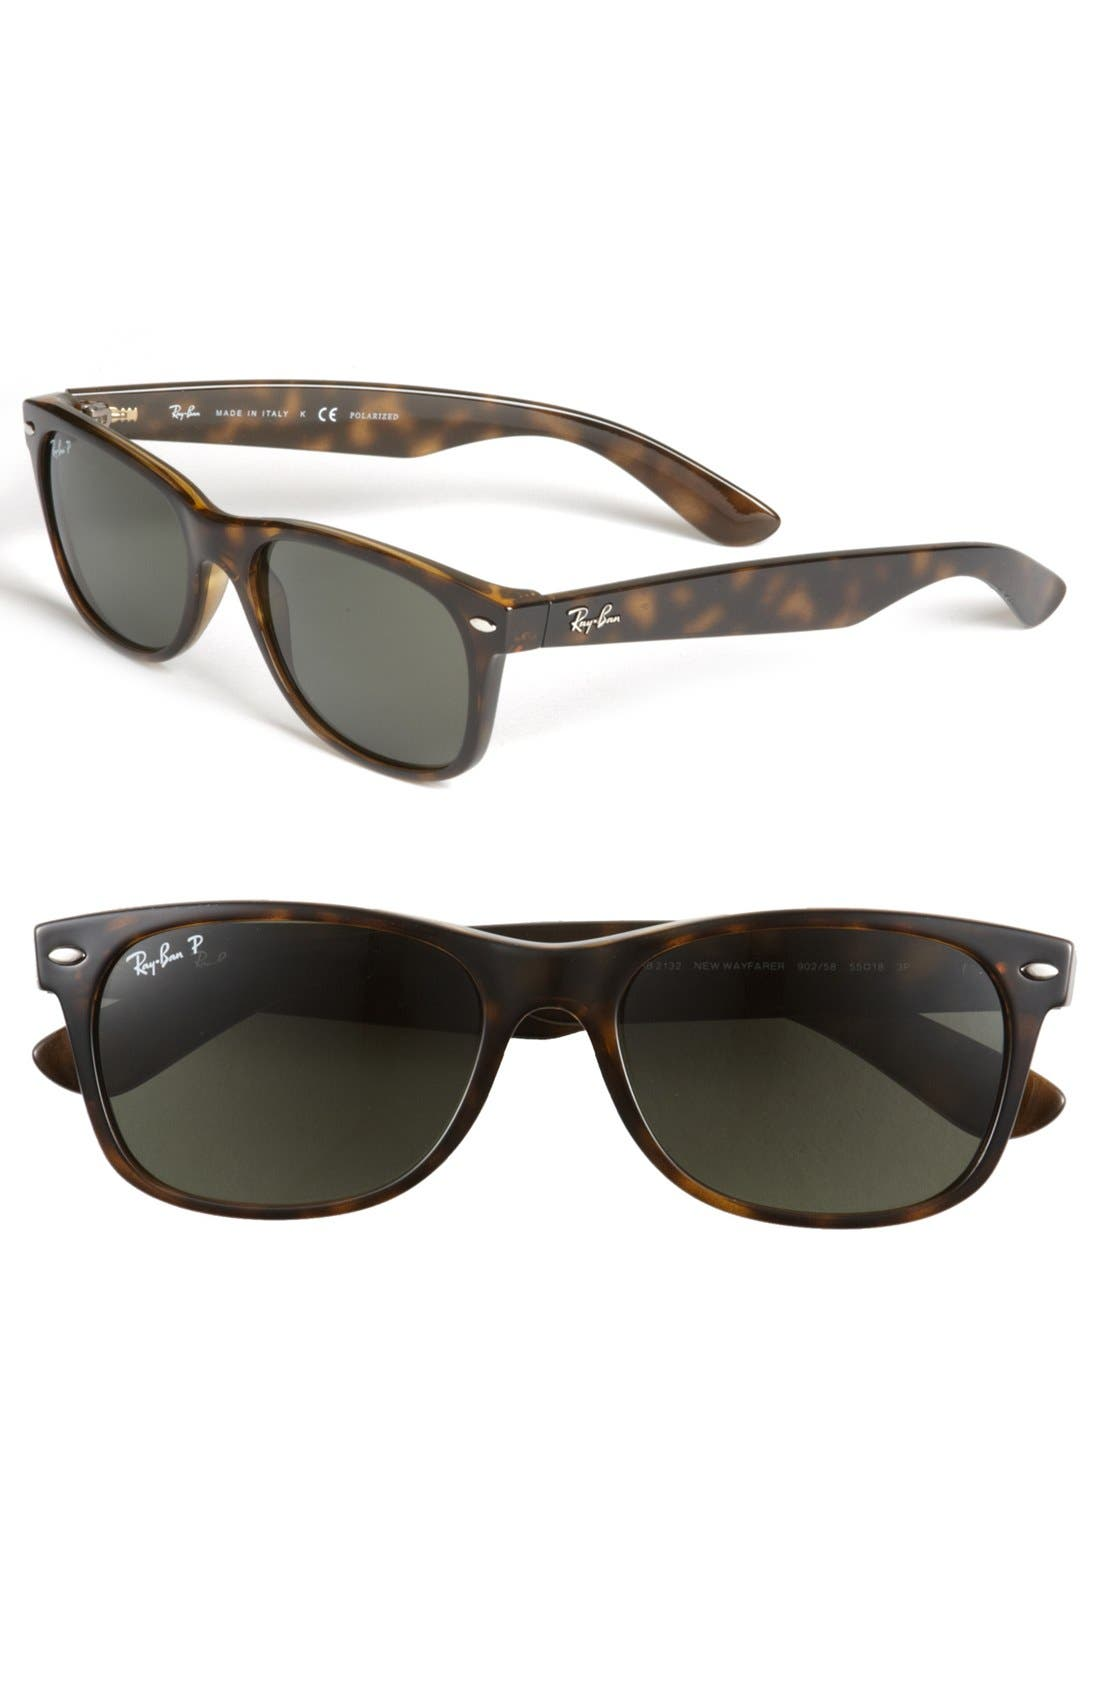 Alternate Image 1 Selected - Ray-Ban 'New Wayfarer' 55mm Polarized Sunglasses